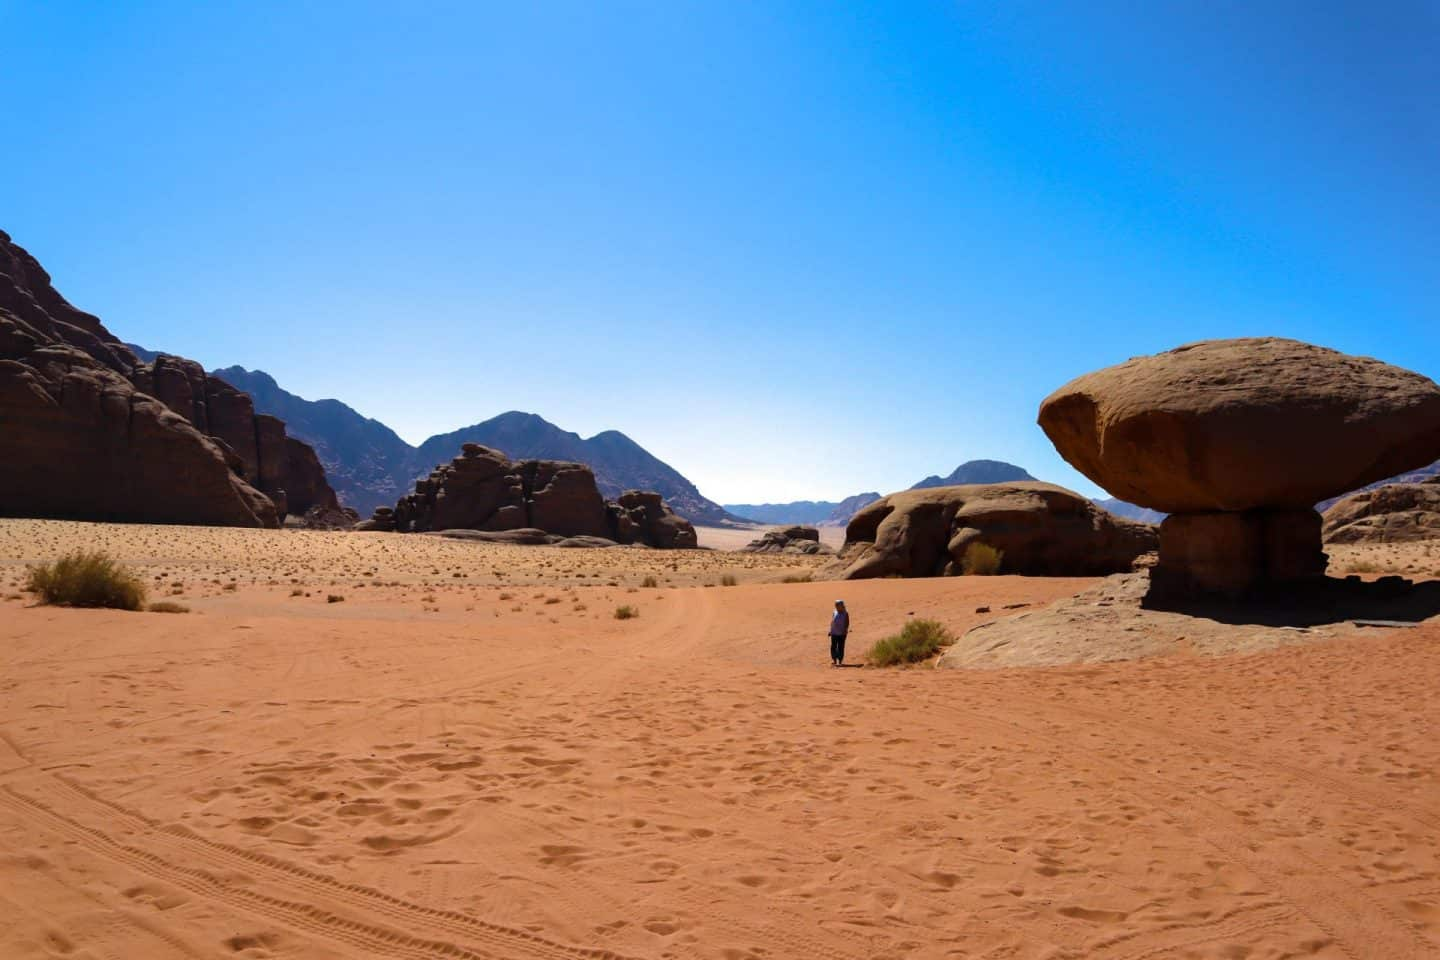 Wadi Rum, Jordan – Planning an itinerary and what to do in the desert